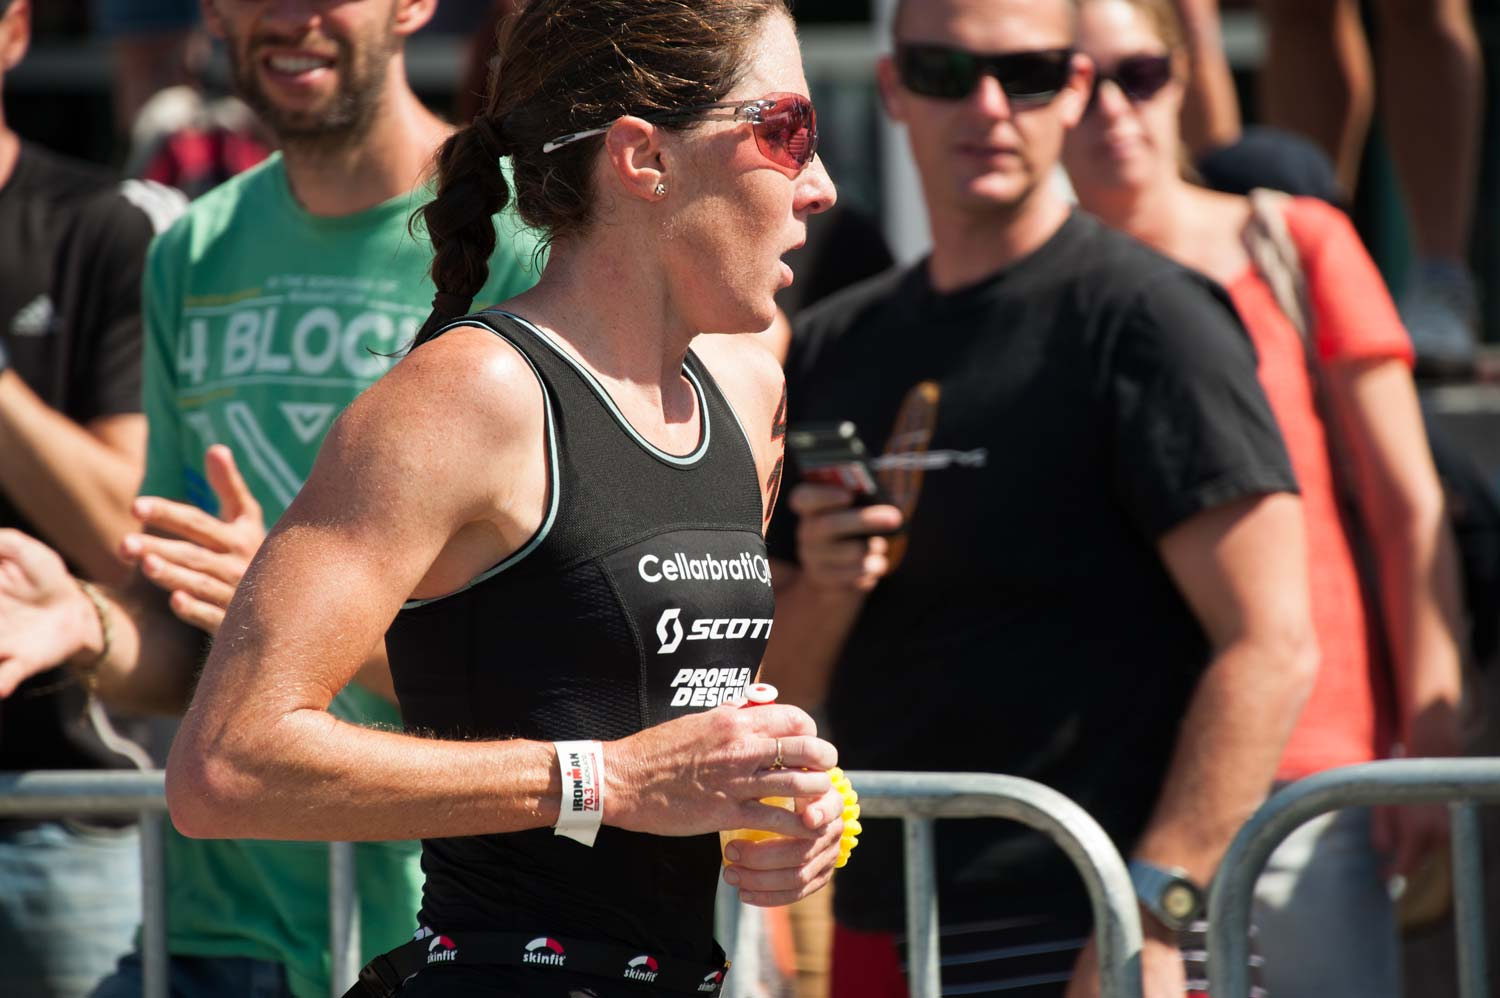 Annabel Luxford approaches the finish line to take second place.